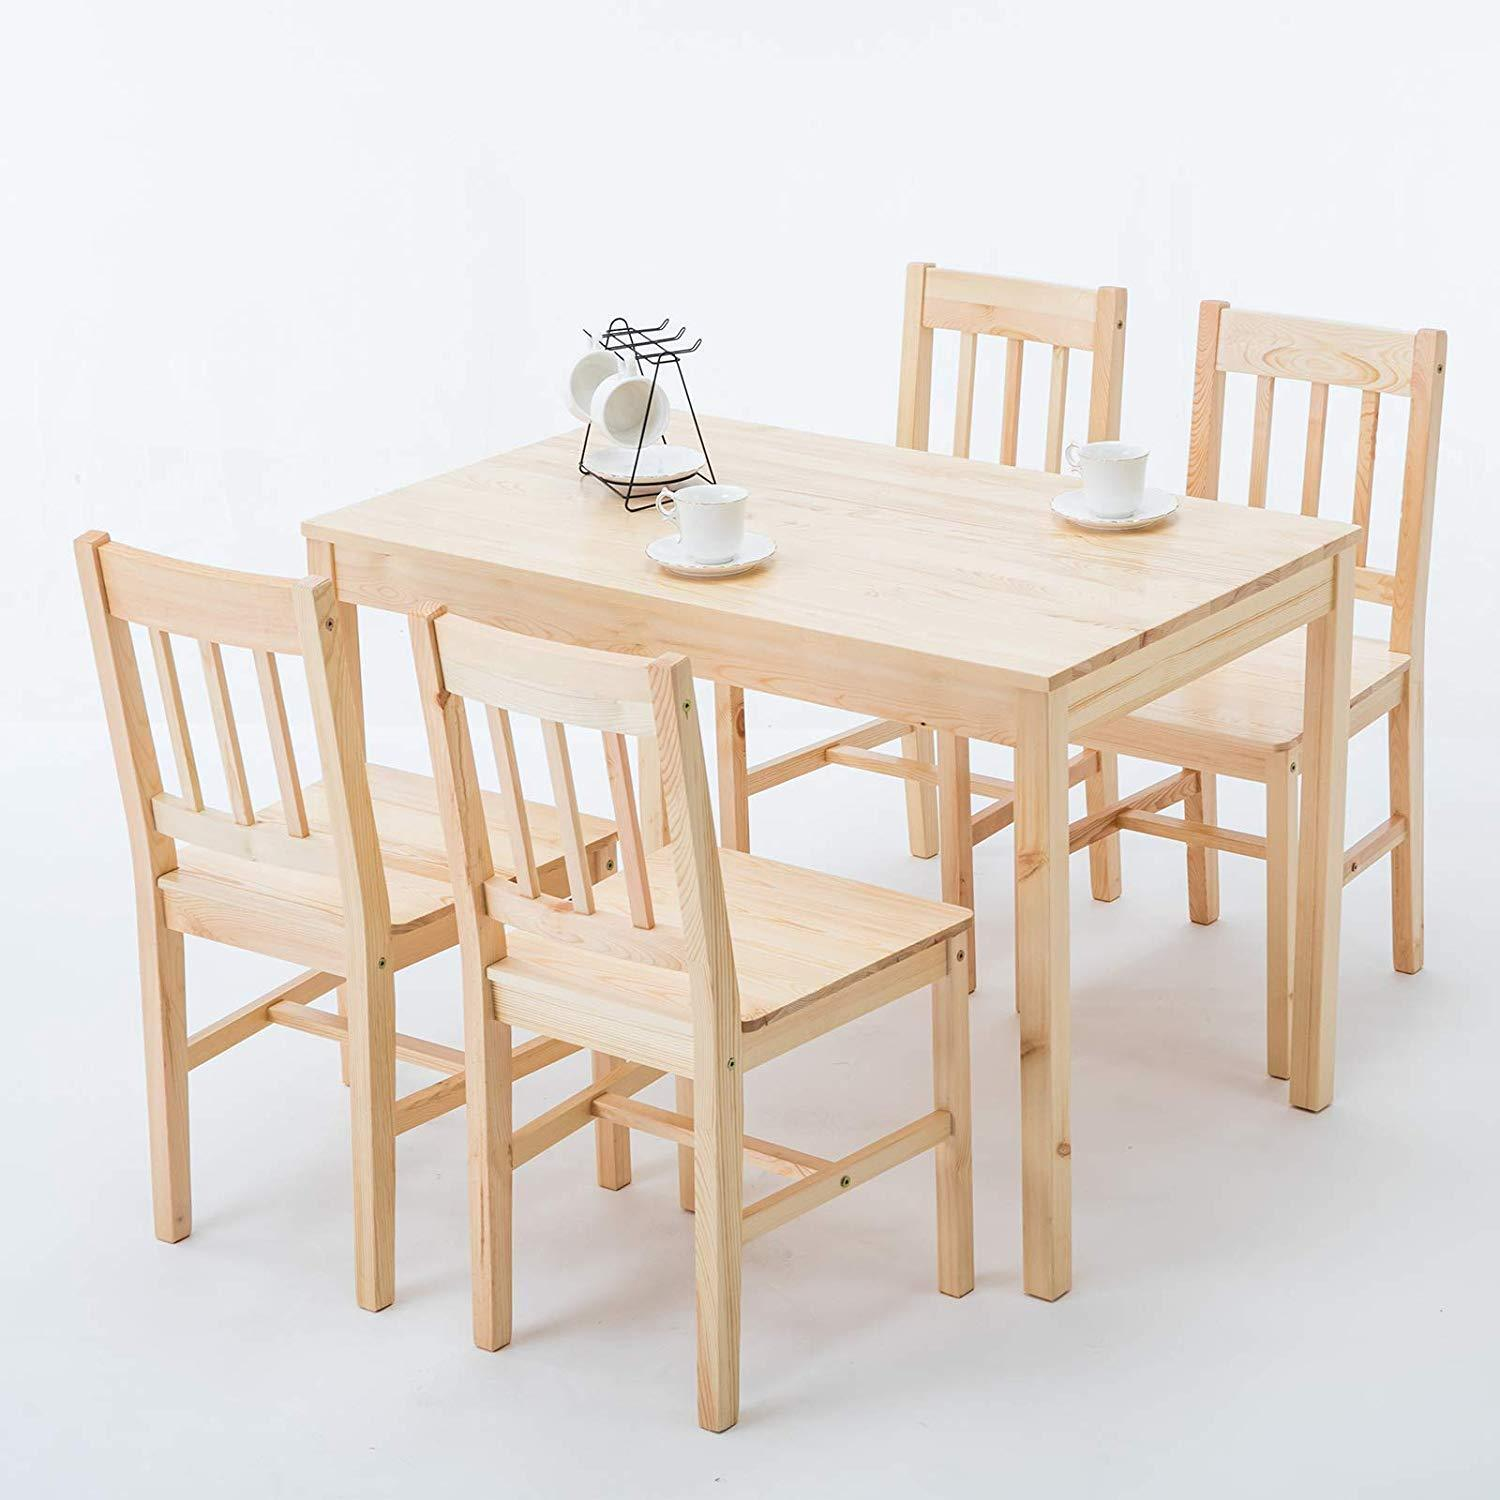 Natural dining table and 4 chairs pine wood set kitchen breakfast furniture